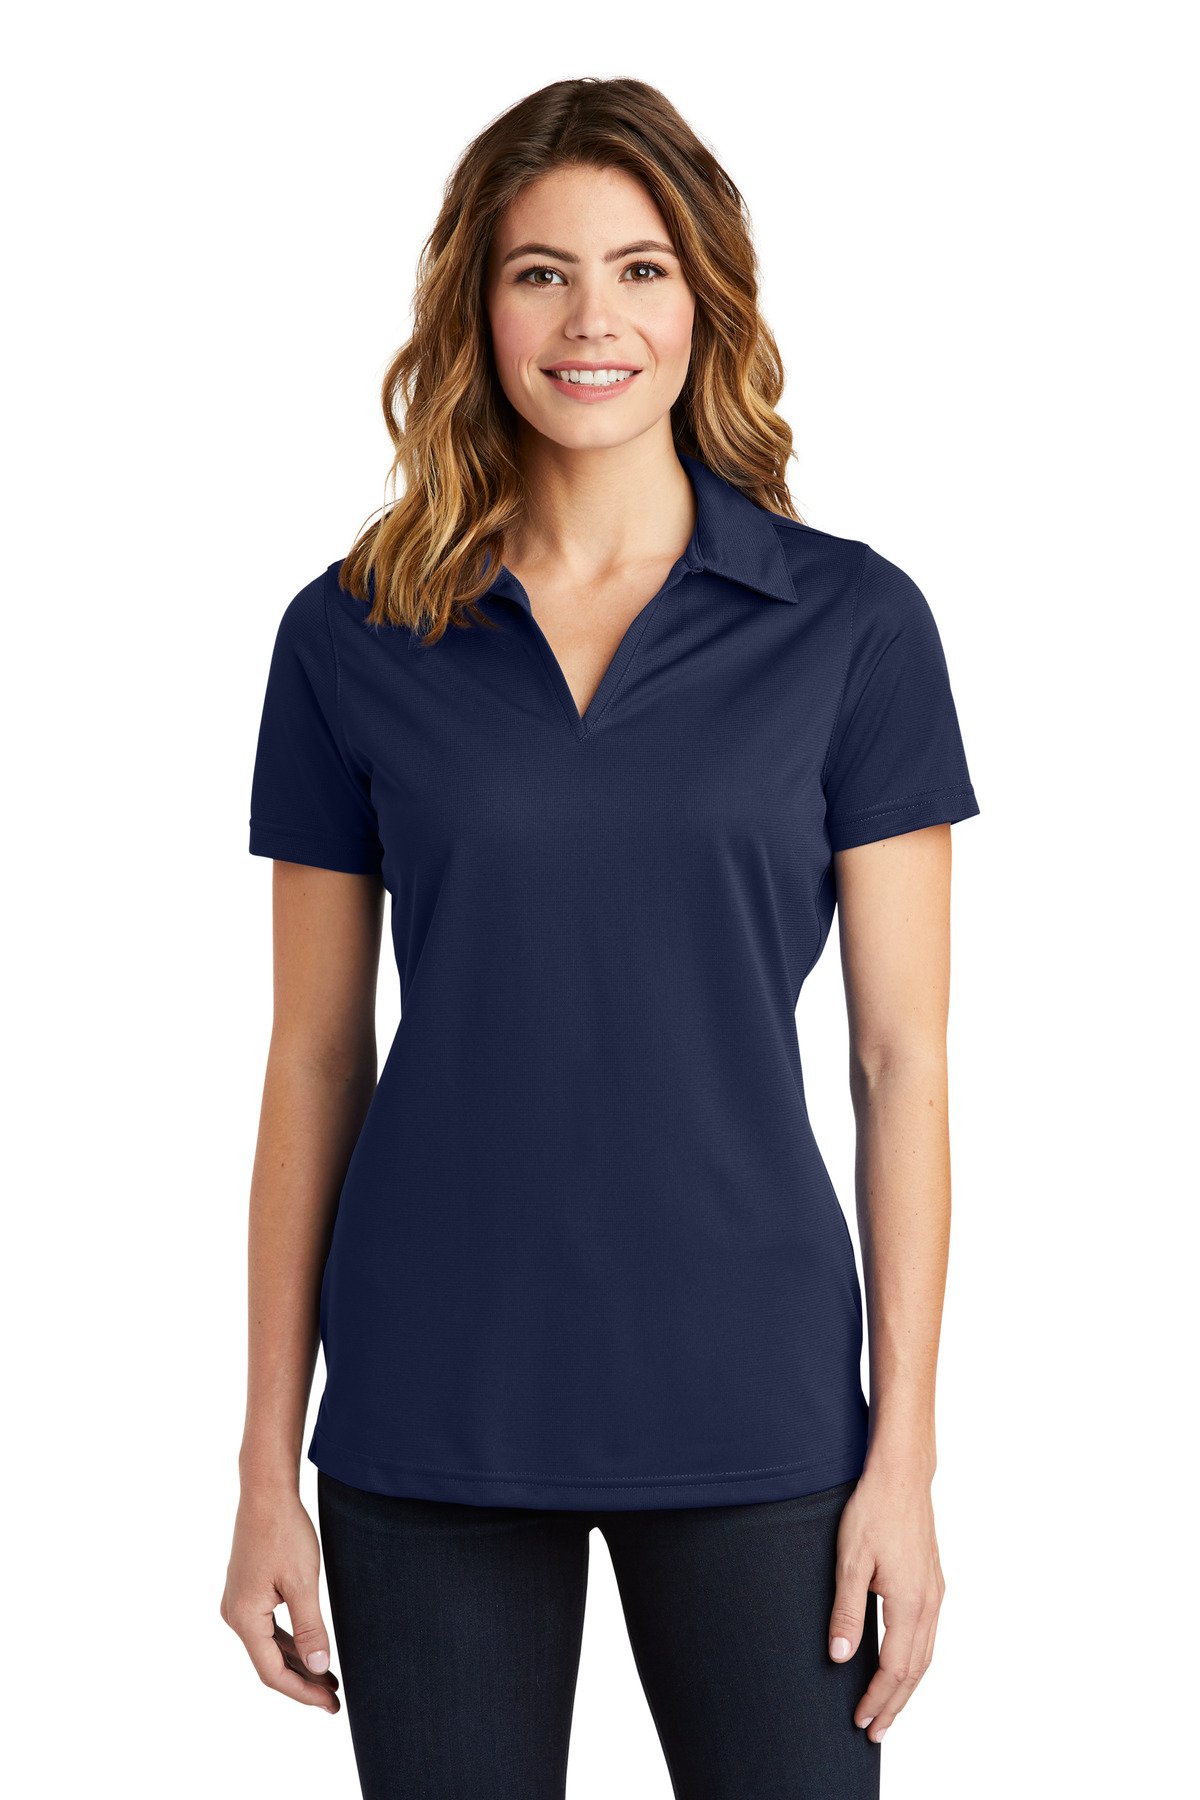 Sport-Tek ®  Ladies PosiCharge ®  Active Textured Polo. LST690 - True Navy